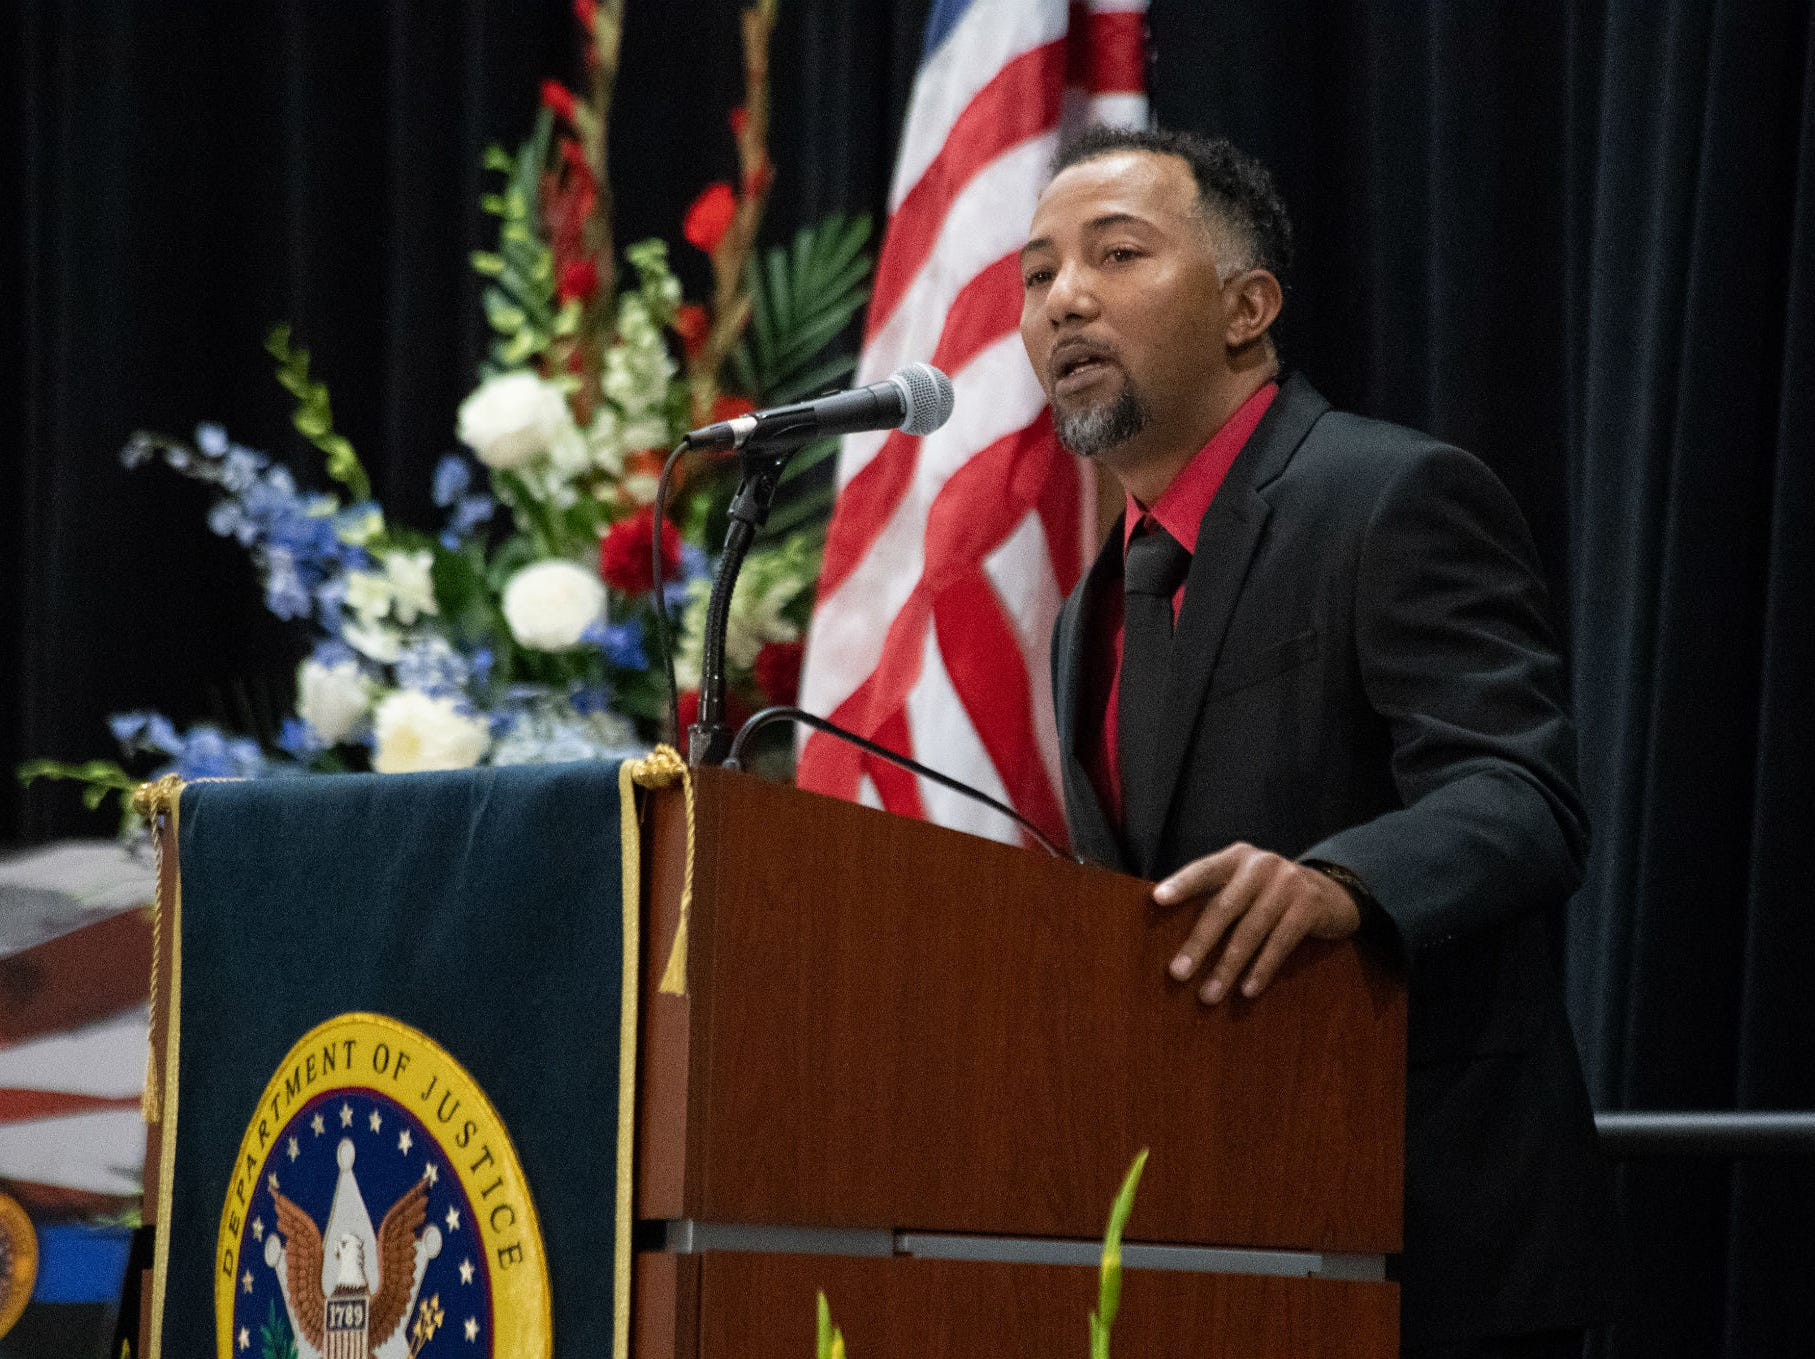 Nearly 2,000 people attended the Celebration of Life service at the Tucson Convention Center Dec. 7, 2018, for Deputy U.S. Marshal Chase White, 41, who was killed in the line of duty while executing a felony arrest warrant Nov. 29 in north Tucson.